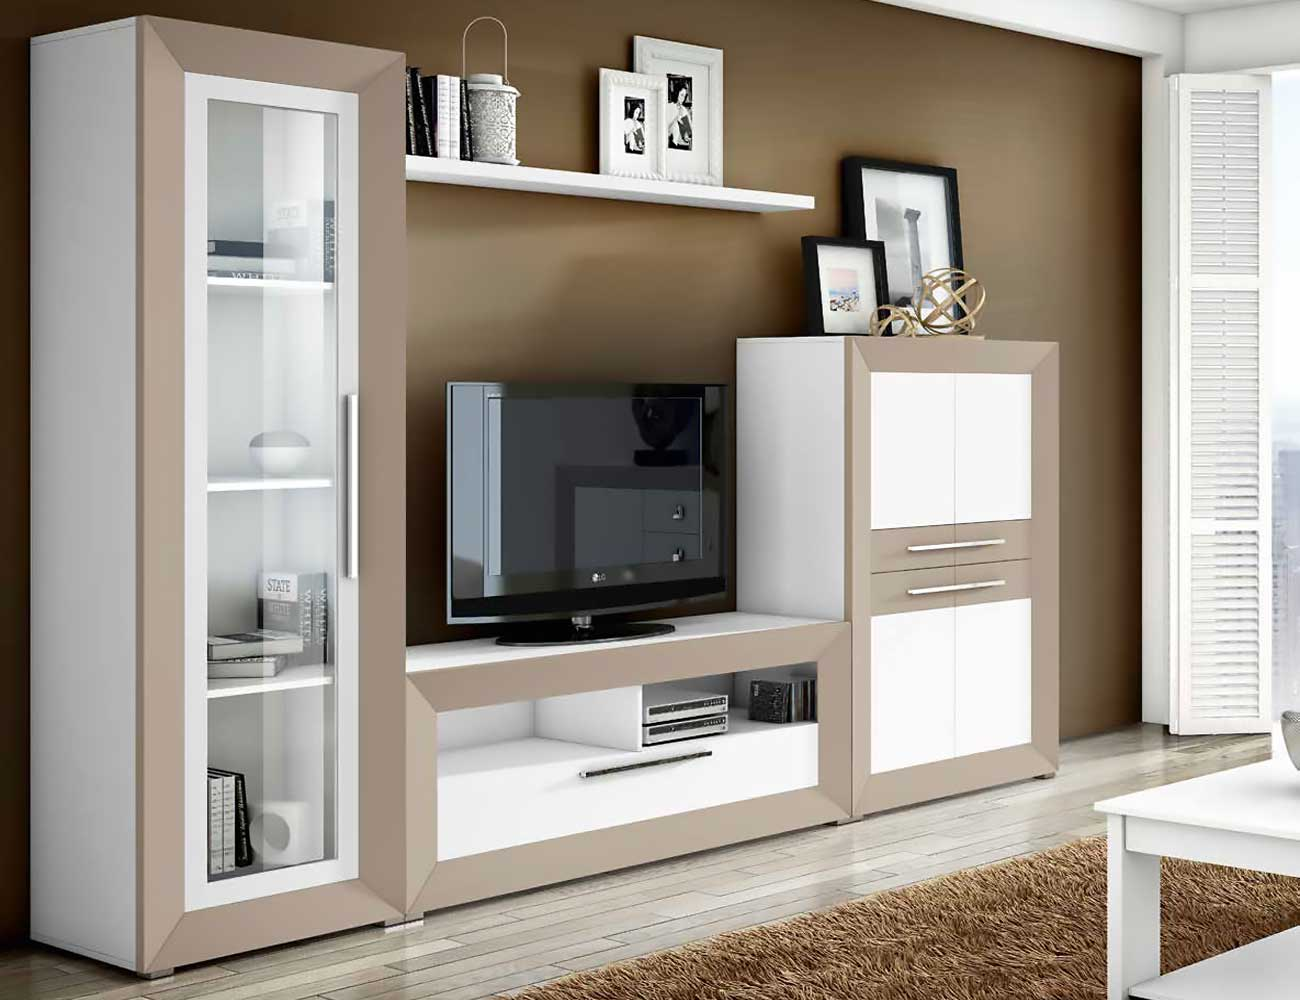 Mueble de sal n moderno blanco con vis n factory del for Mueble salon blanco y madera